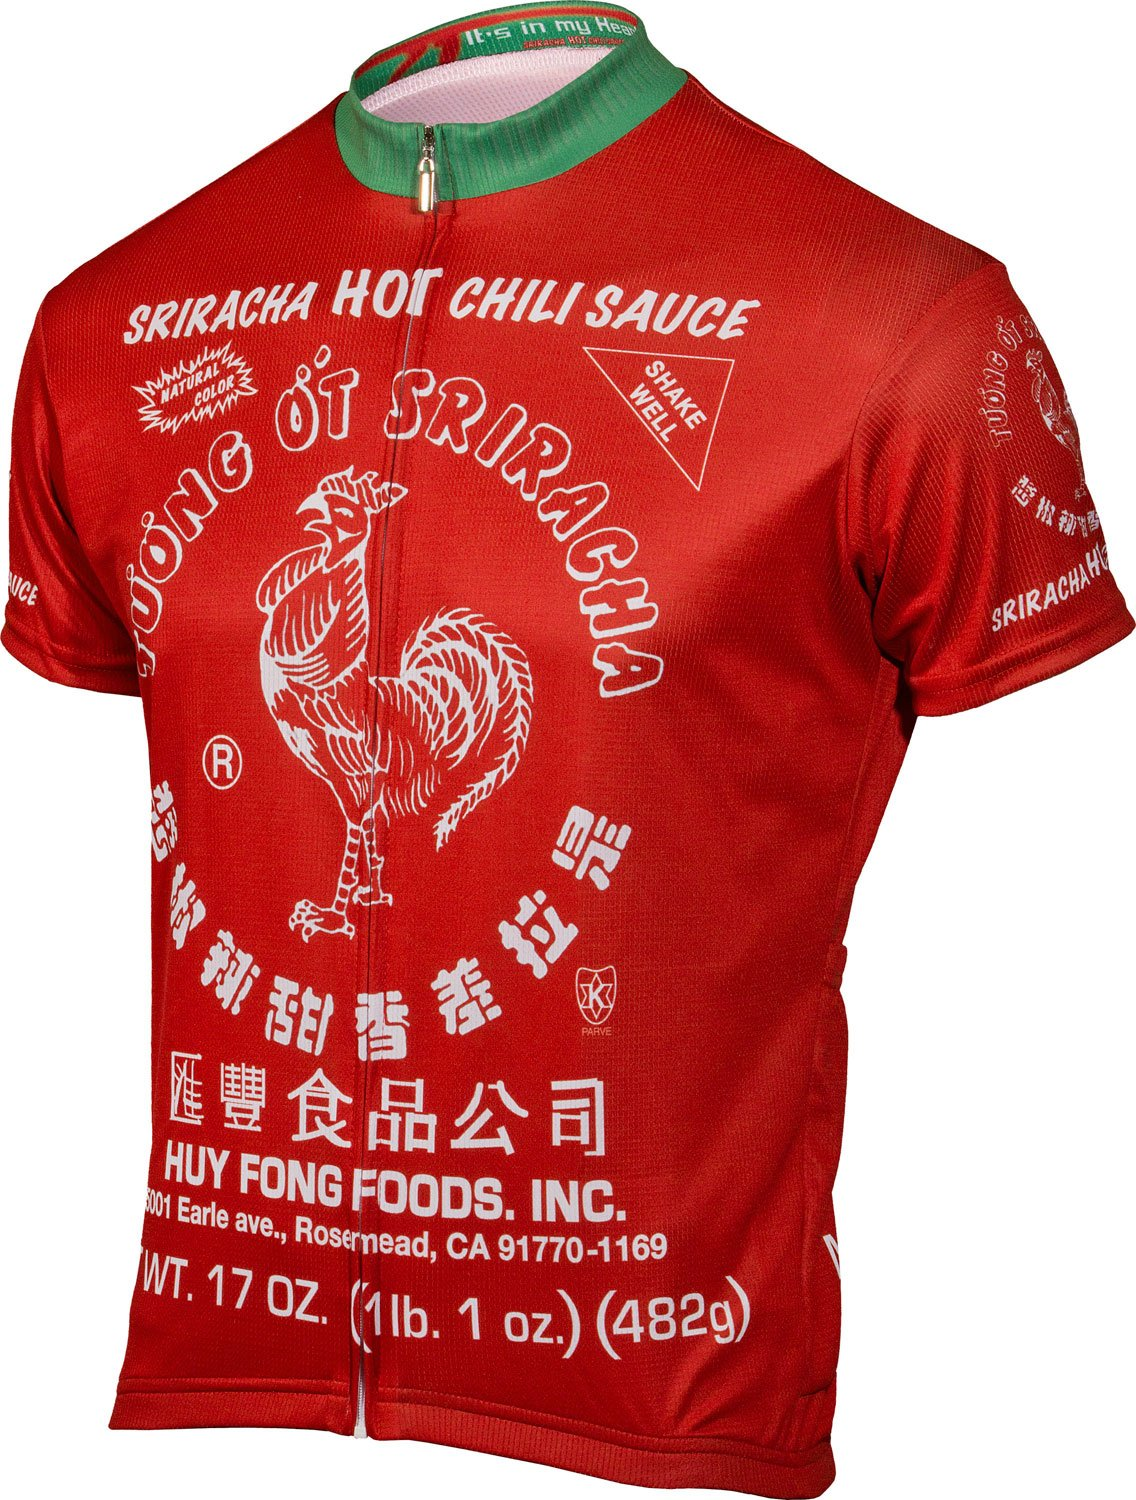 Its In My Heart Sriracha Hot Chili Sauce Jersey